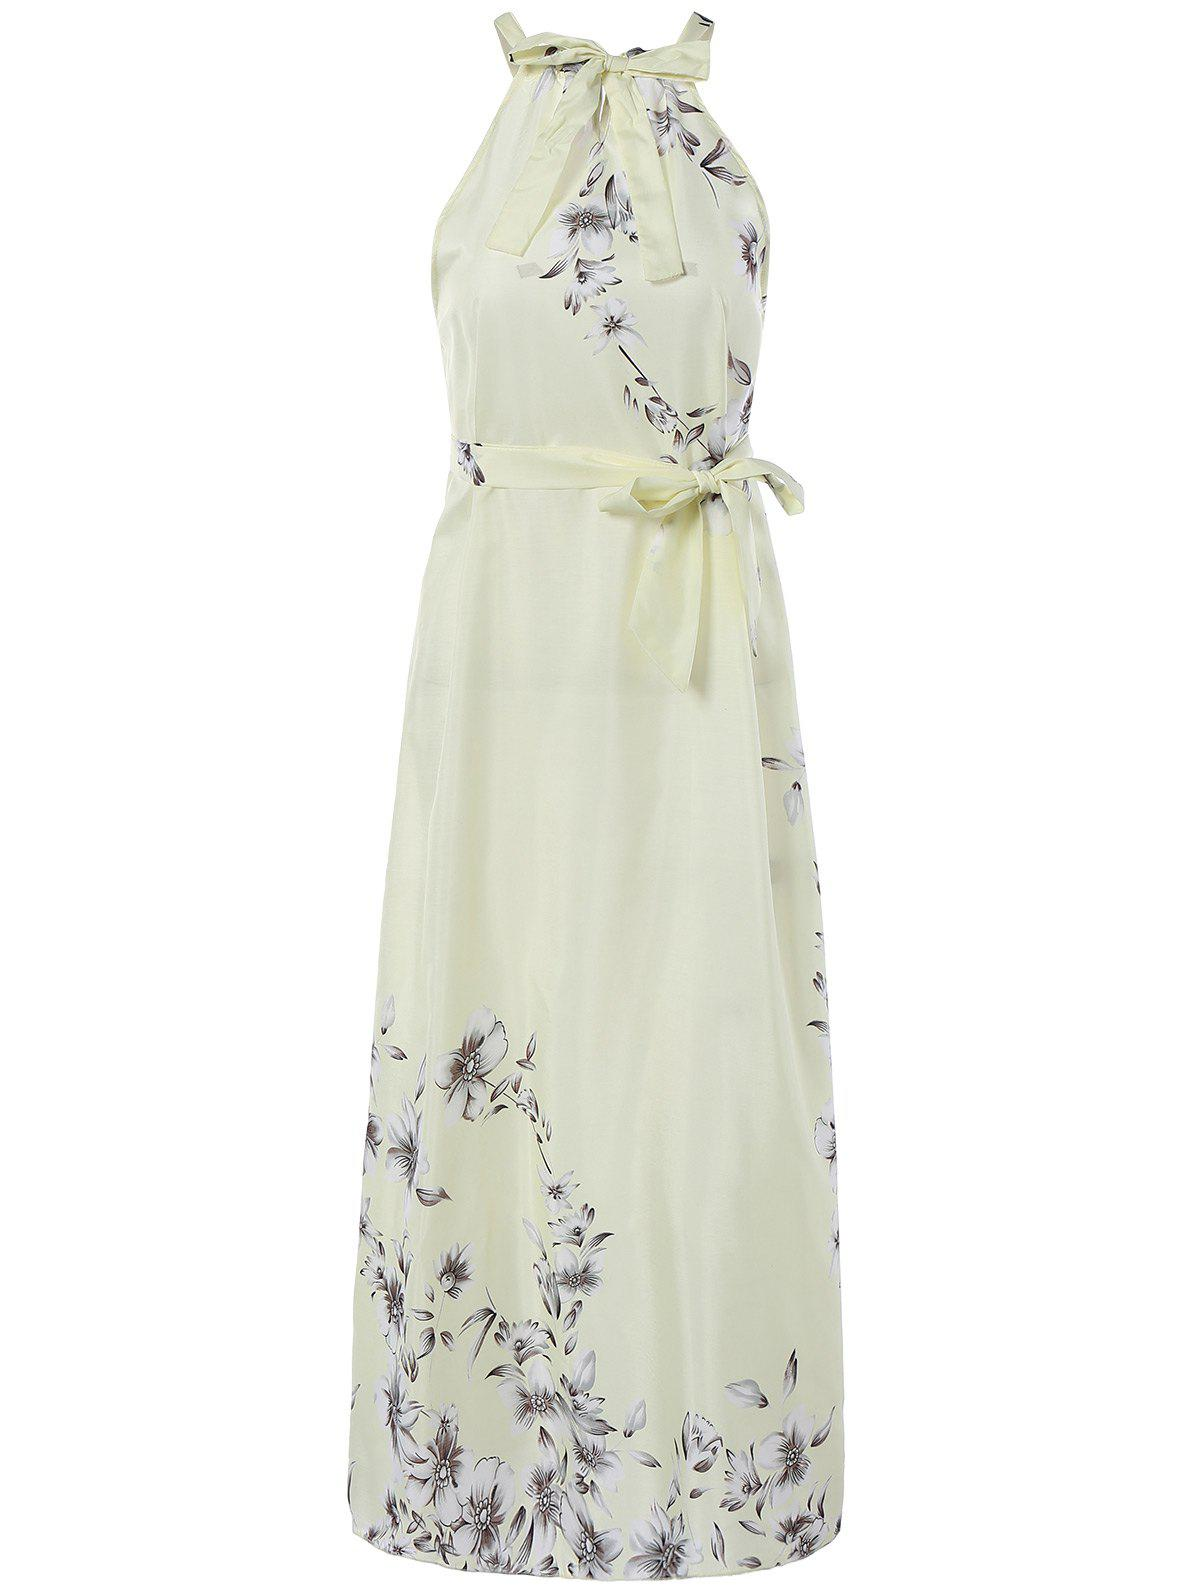 Sweet Sleeveless Floral Tied Dress For Women - LIGHT YELLOW 2XL